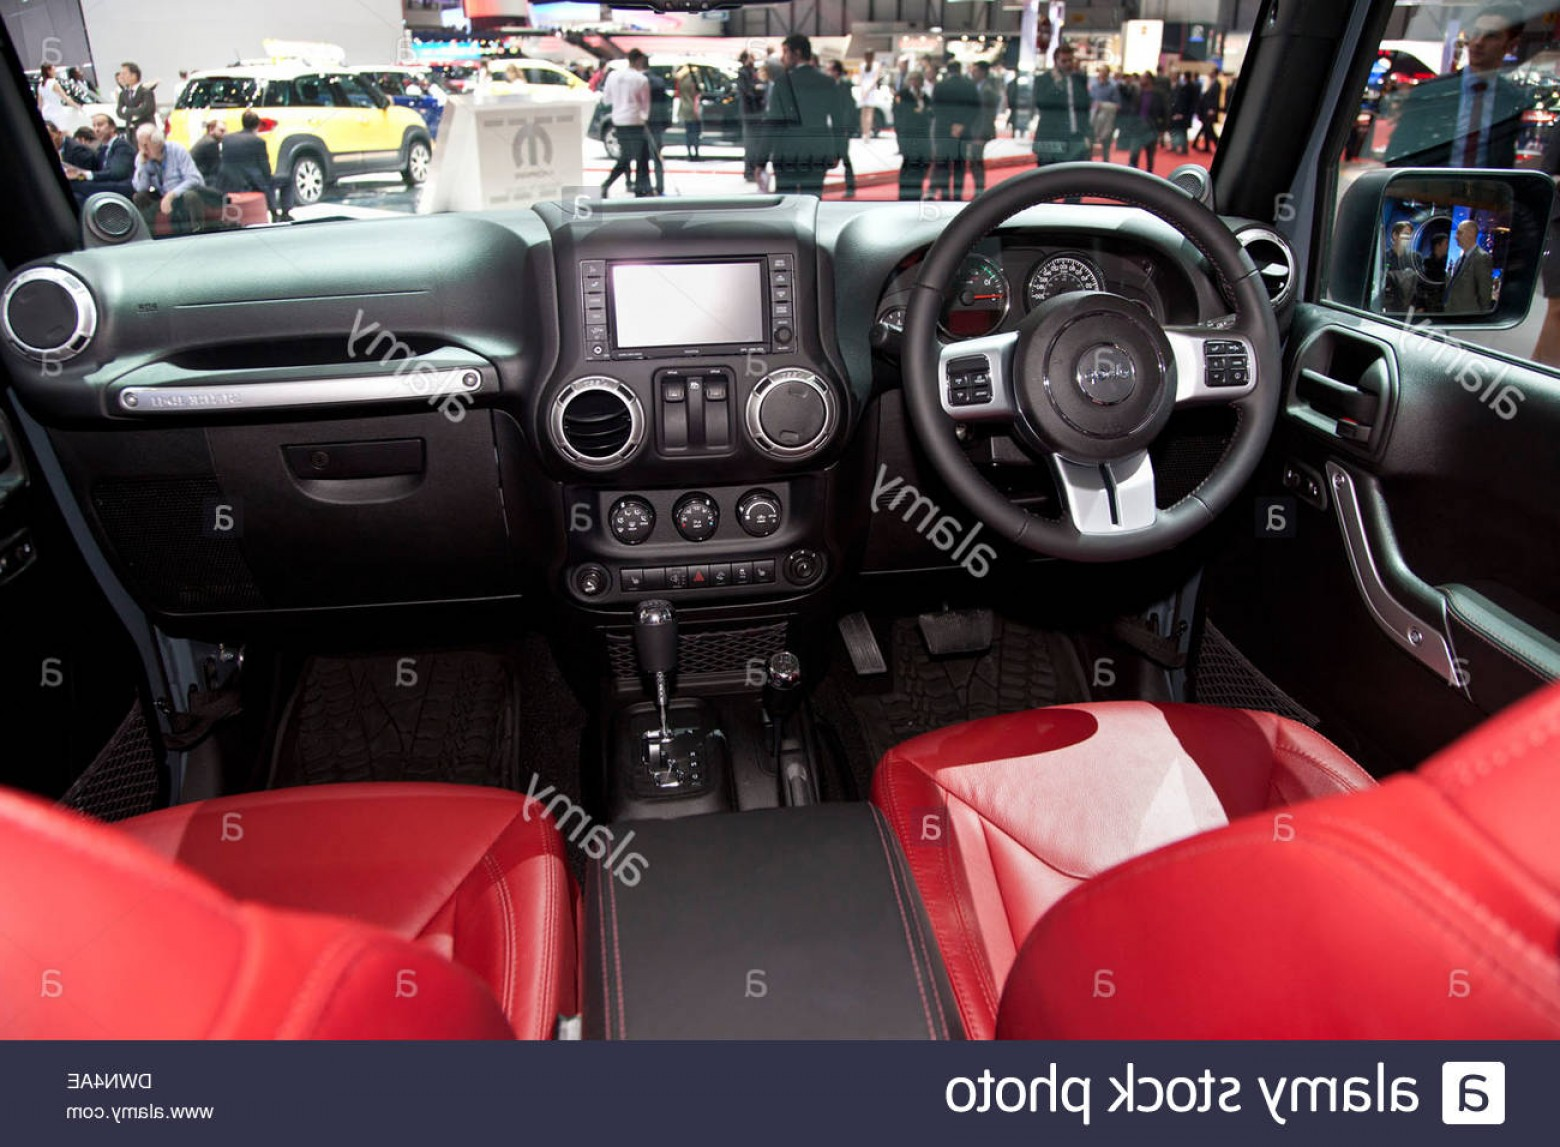 2014 Jeep Wrangler Vector: Stock Photo Jeep Wrangler Rubicon At The Th Geneva International Motor Show